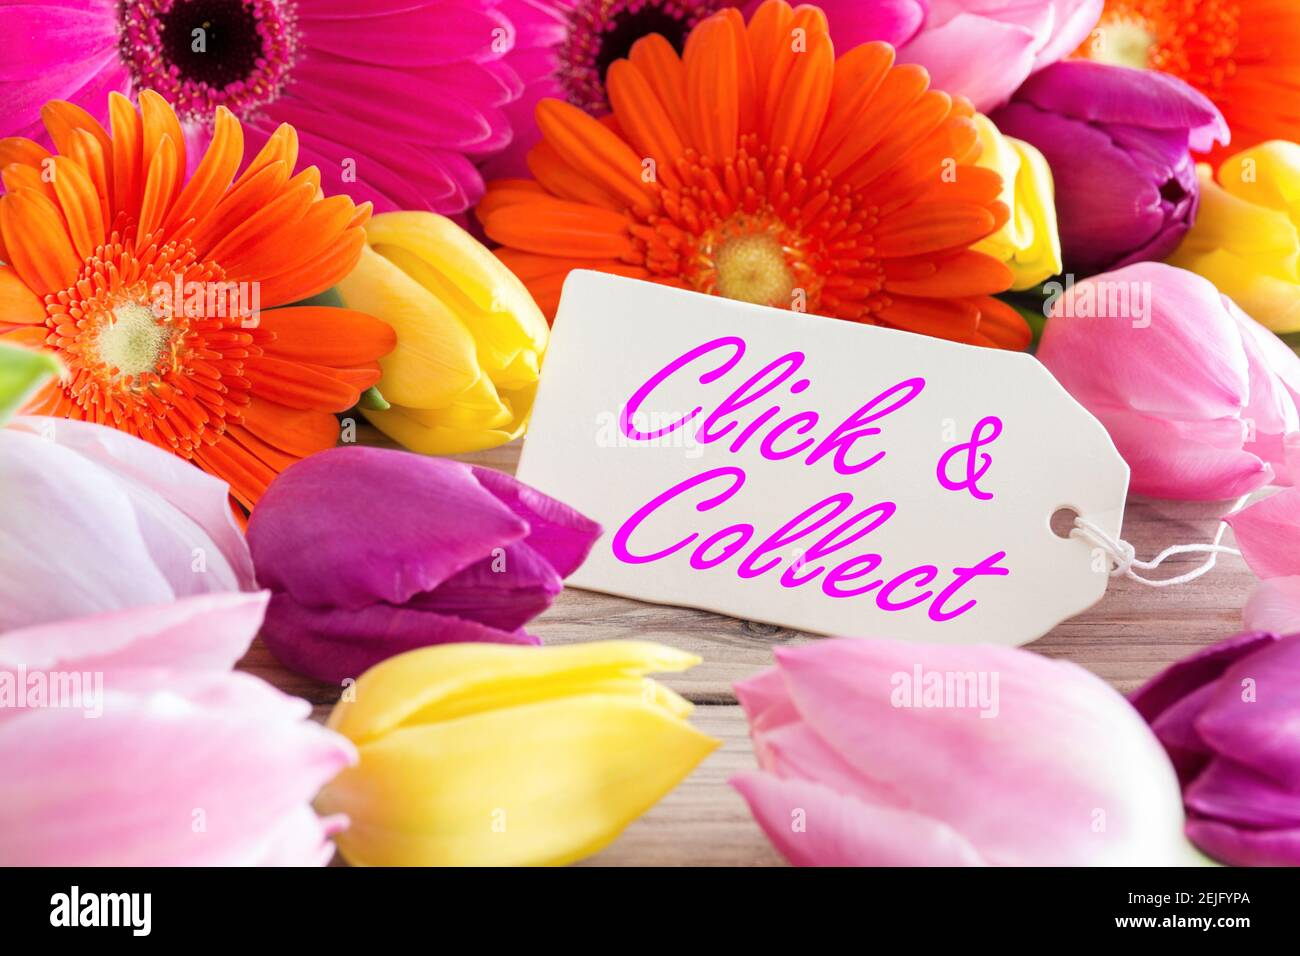 Click and Collect flowers and label Stock Photo